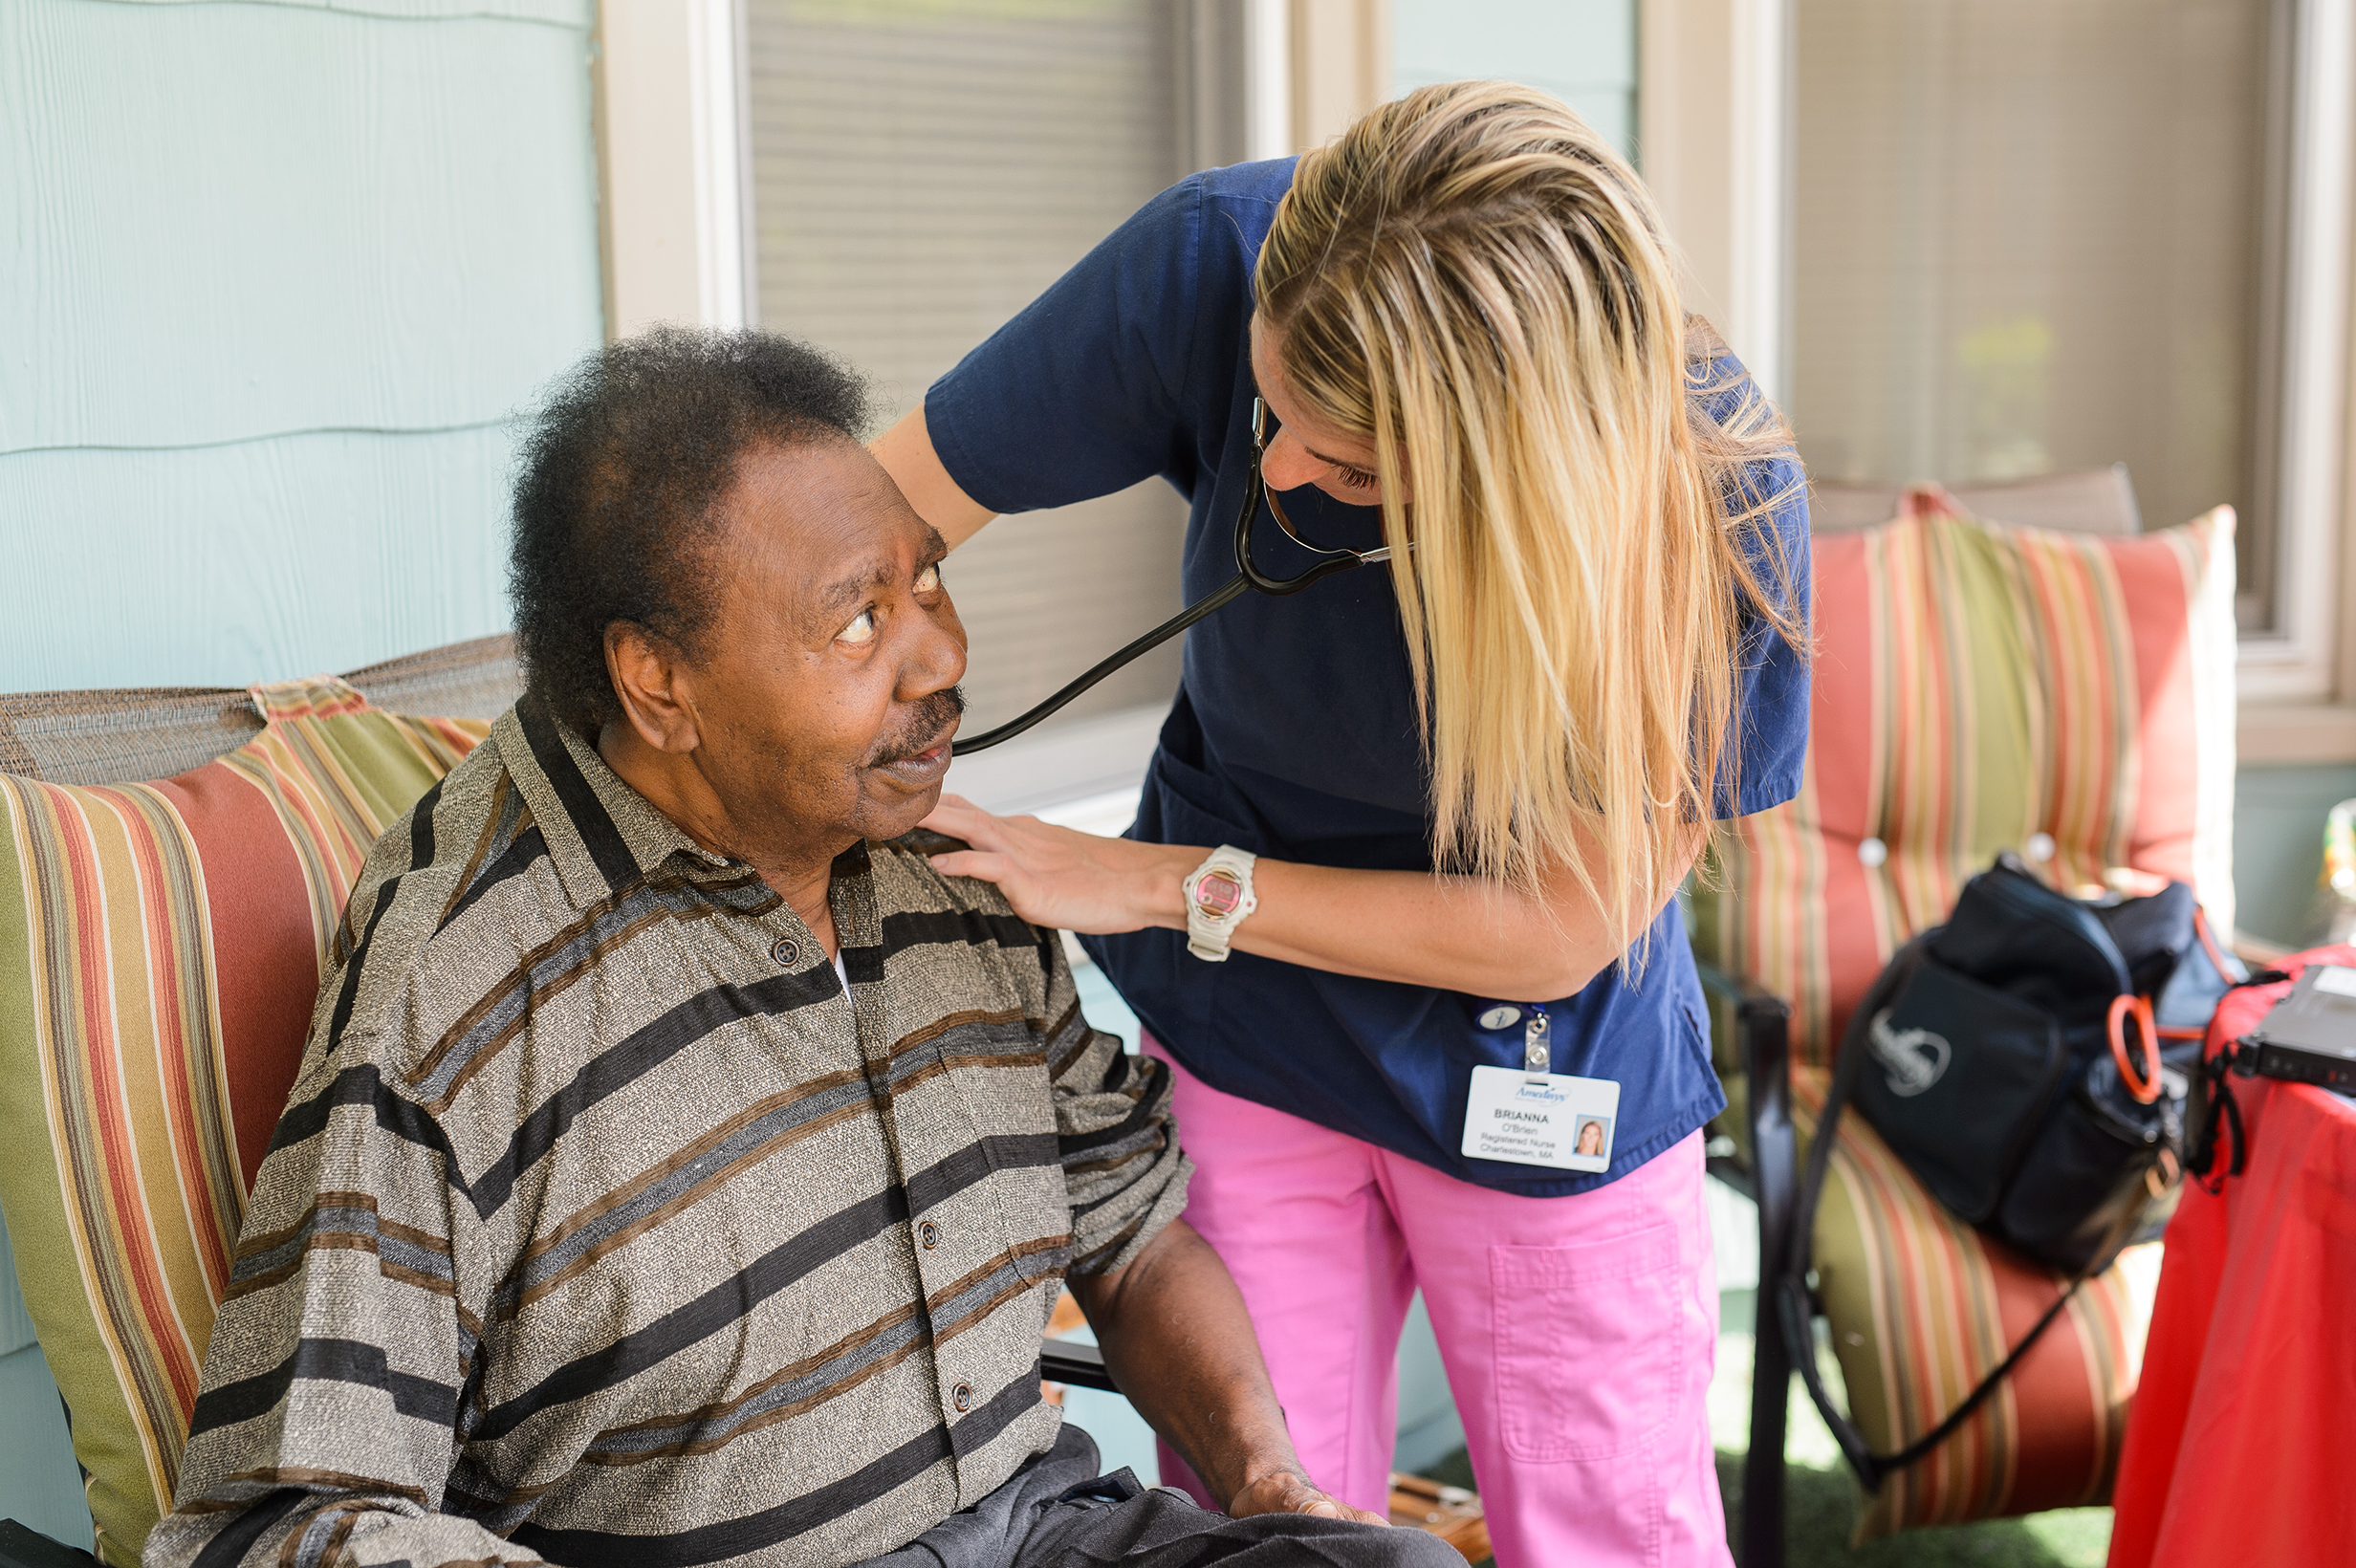 Why Do Some Patients Refuse Home Health Services, and at What Cost?